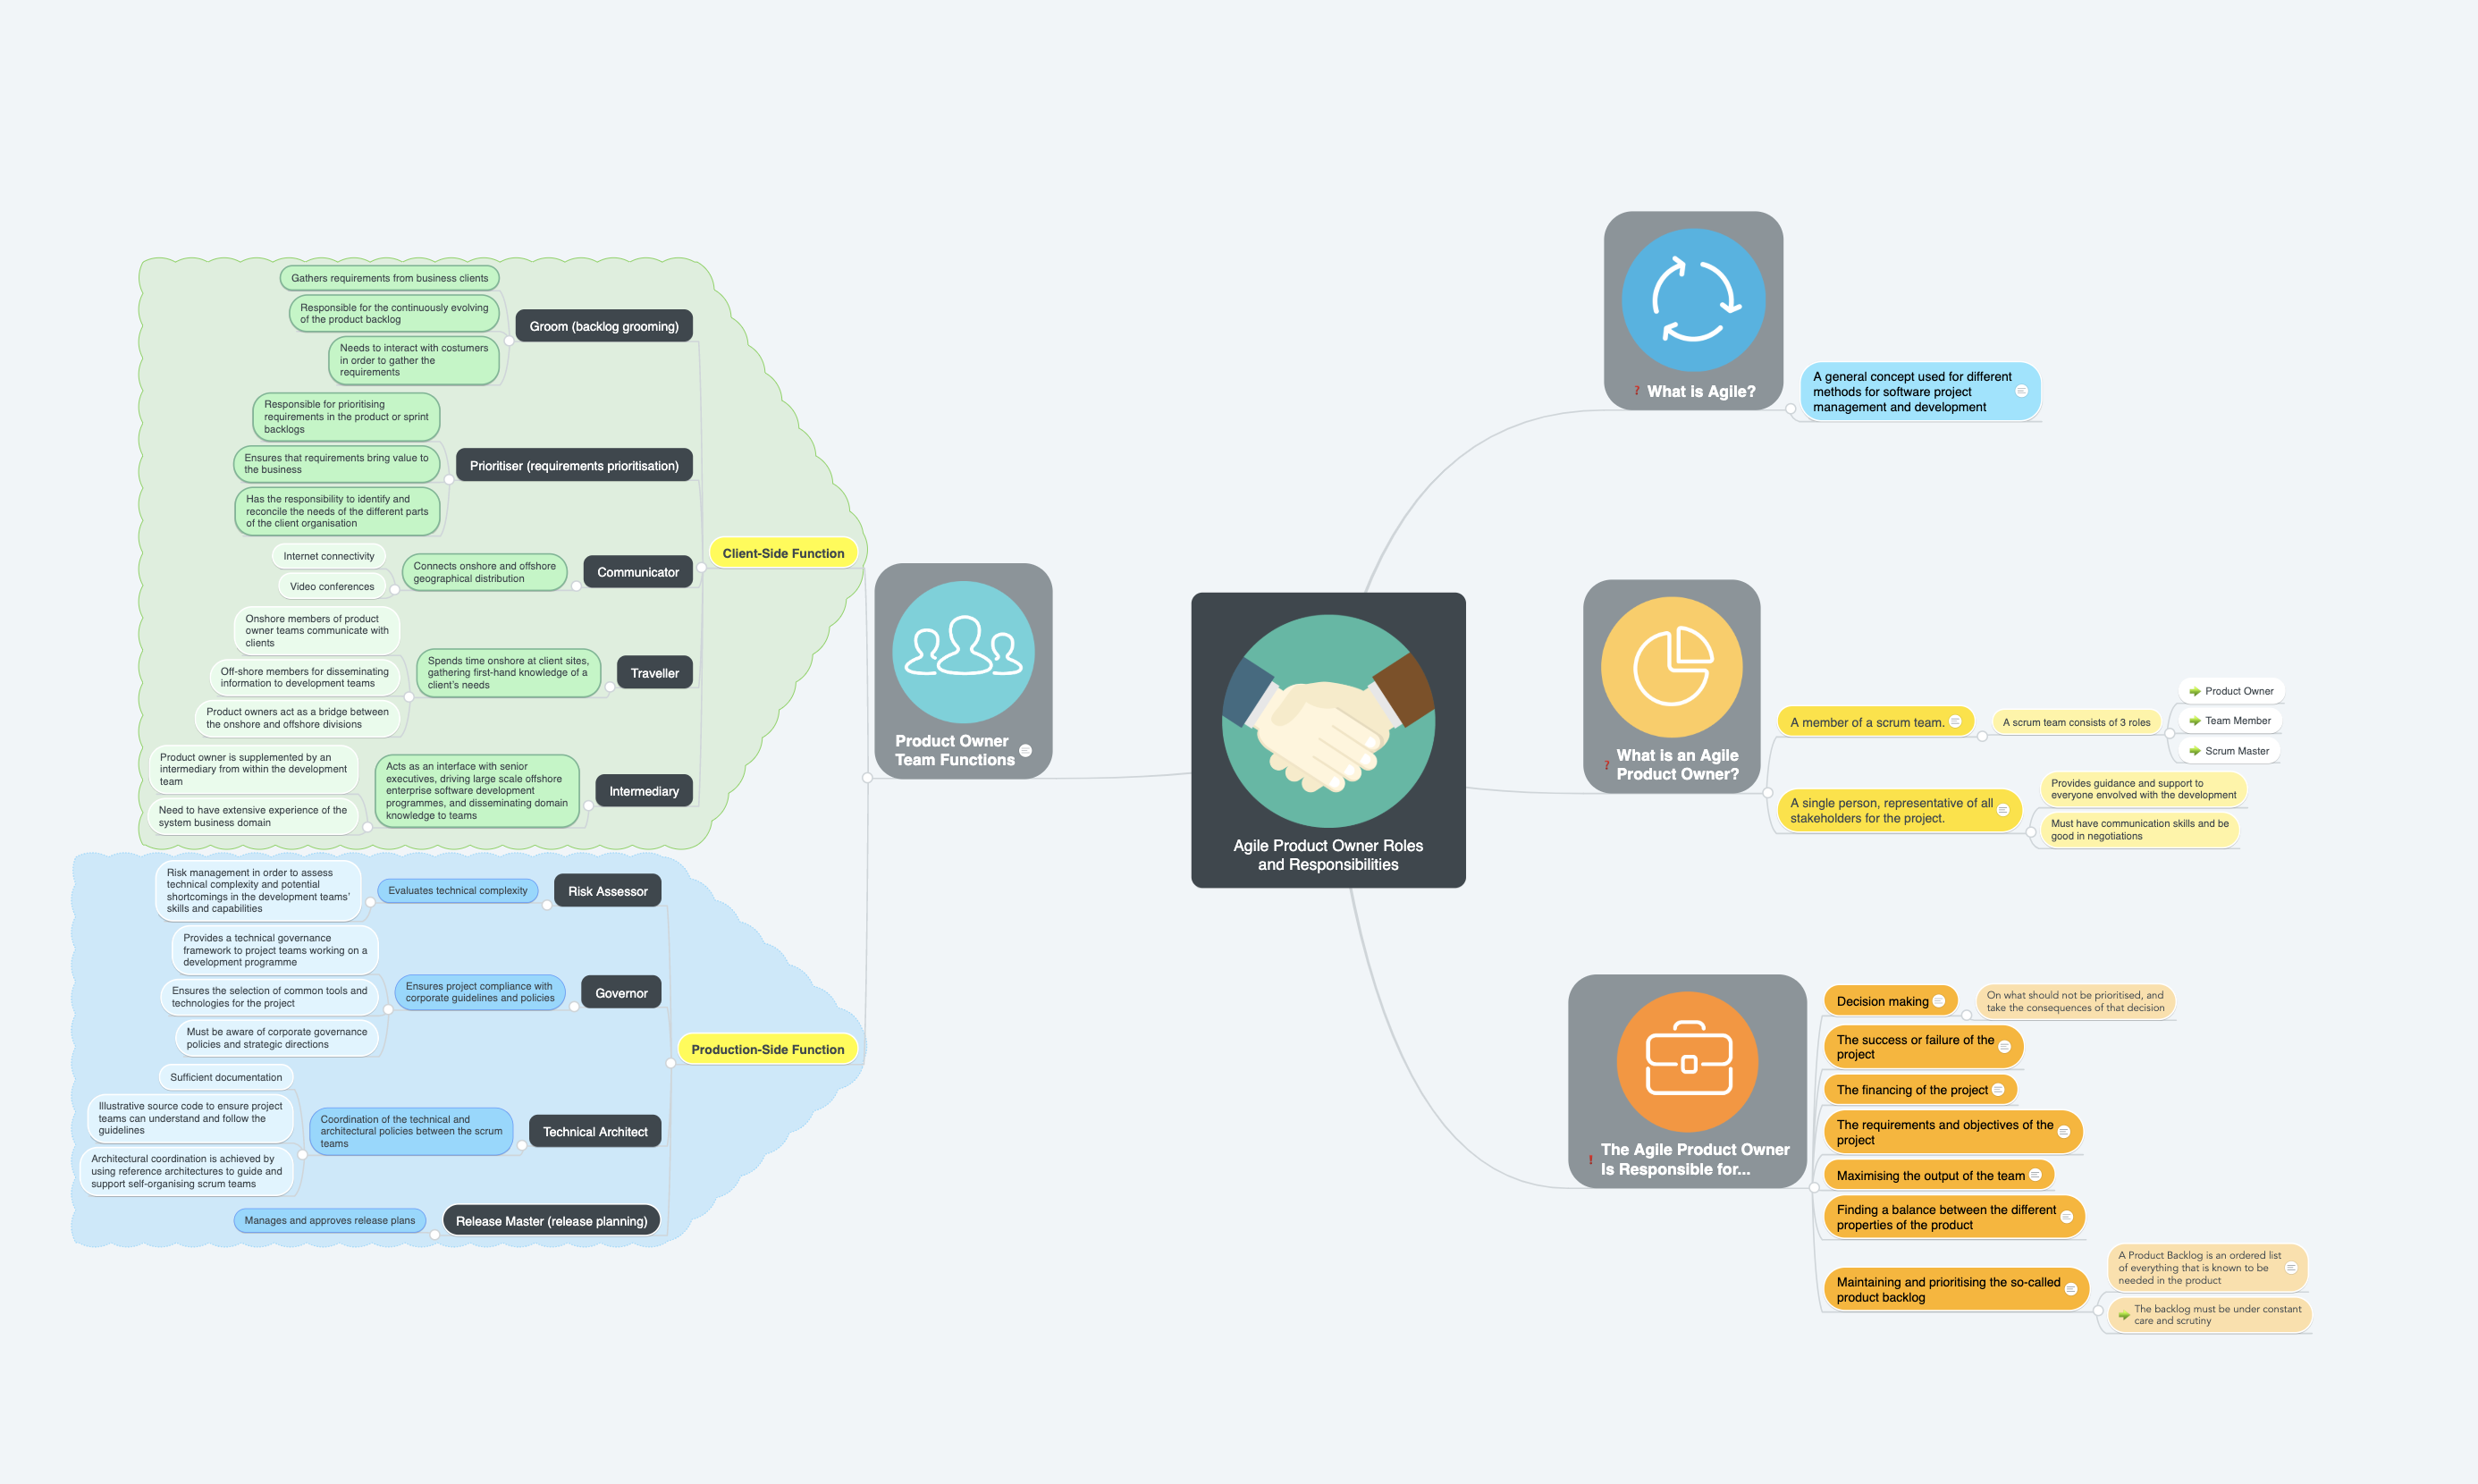 Agile Product Owner Roles and Responsibilities Mind Map